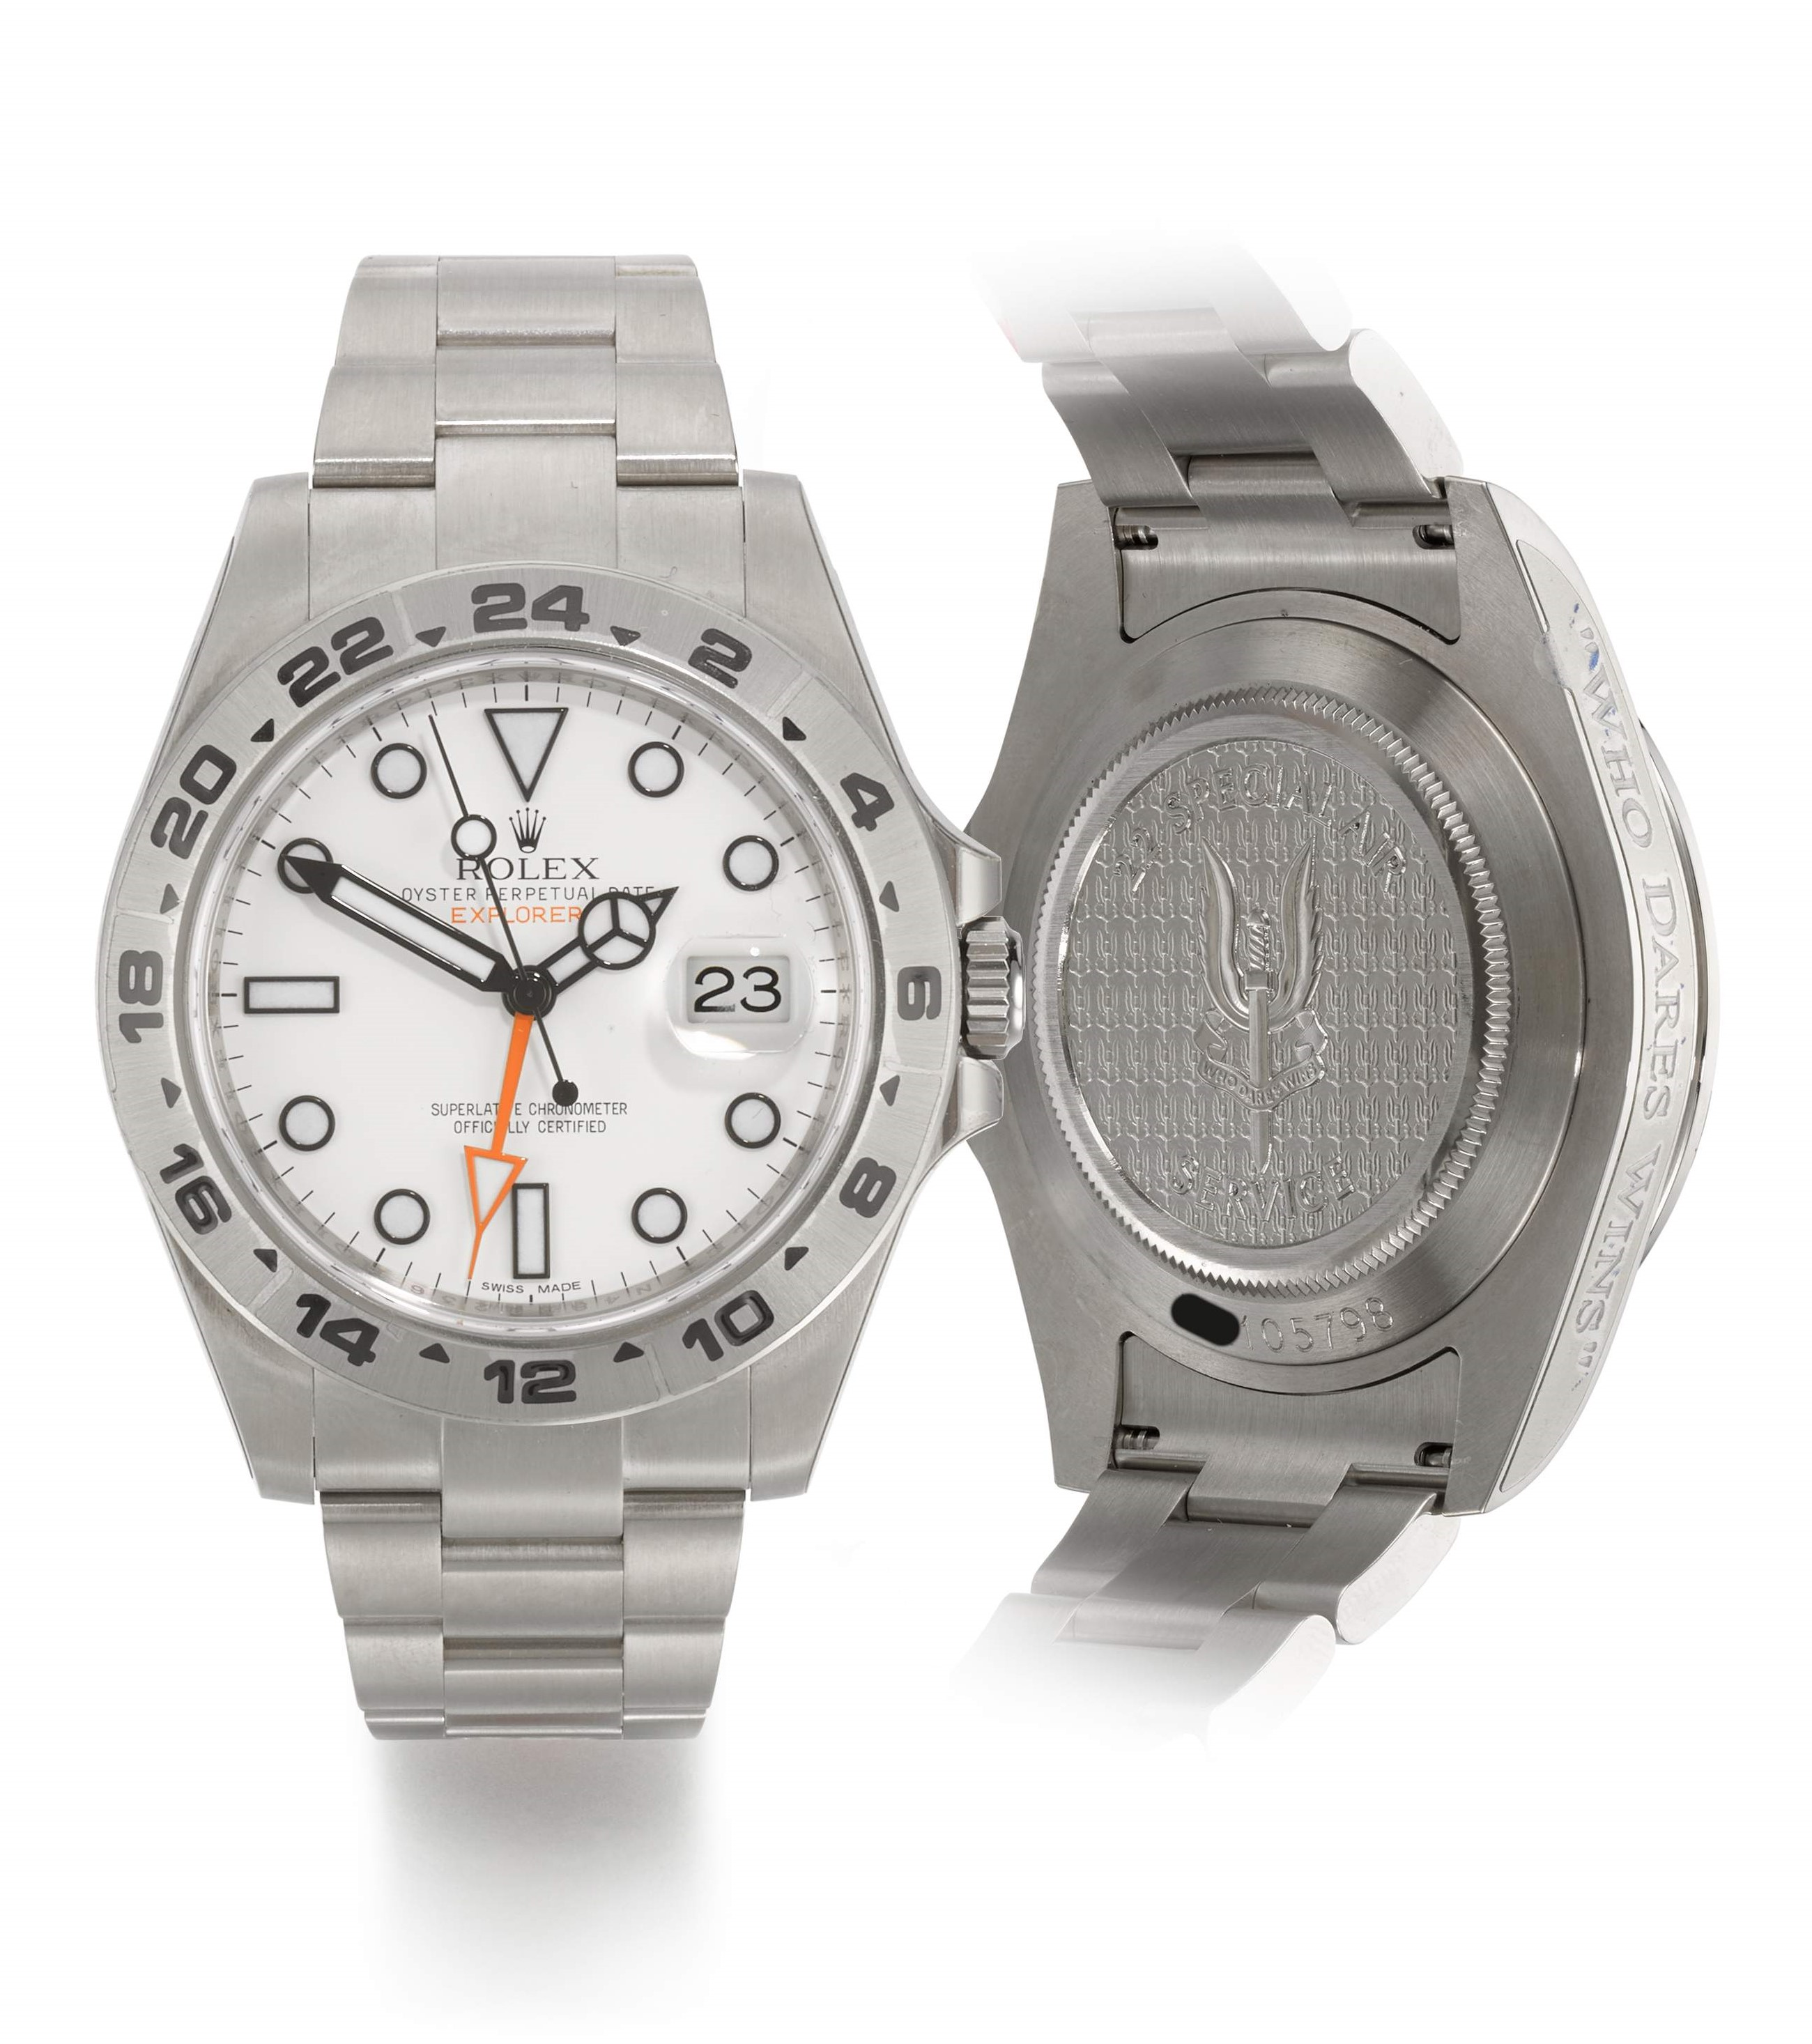 ROLEX |  EXPLORER II, 22 SPECIAL AIR SERVICE, REFERENCE 216570,  MILITARY STAINLESS STEEL DUAL-TIME WRISTWATCH WITH DATE AND BRACELET,  CIRCA 2012